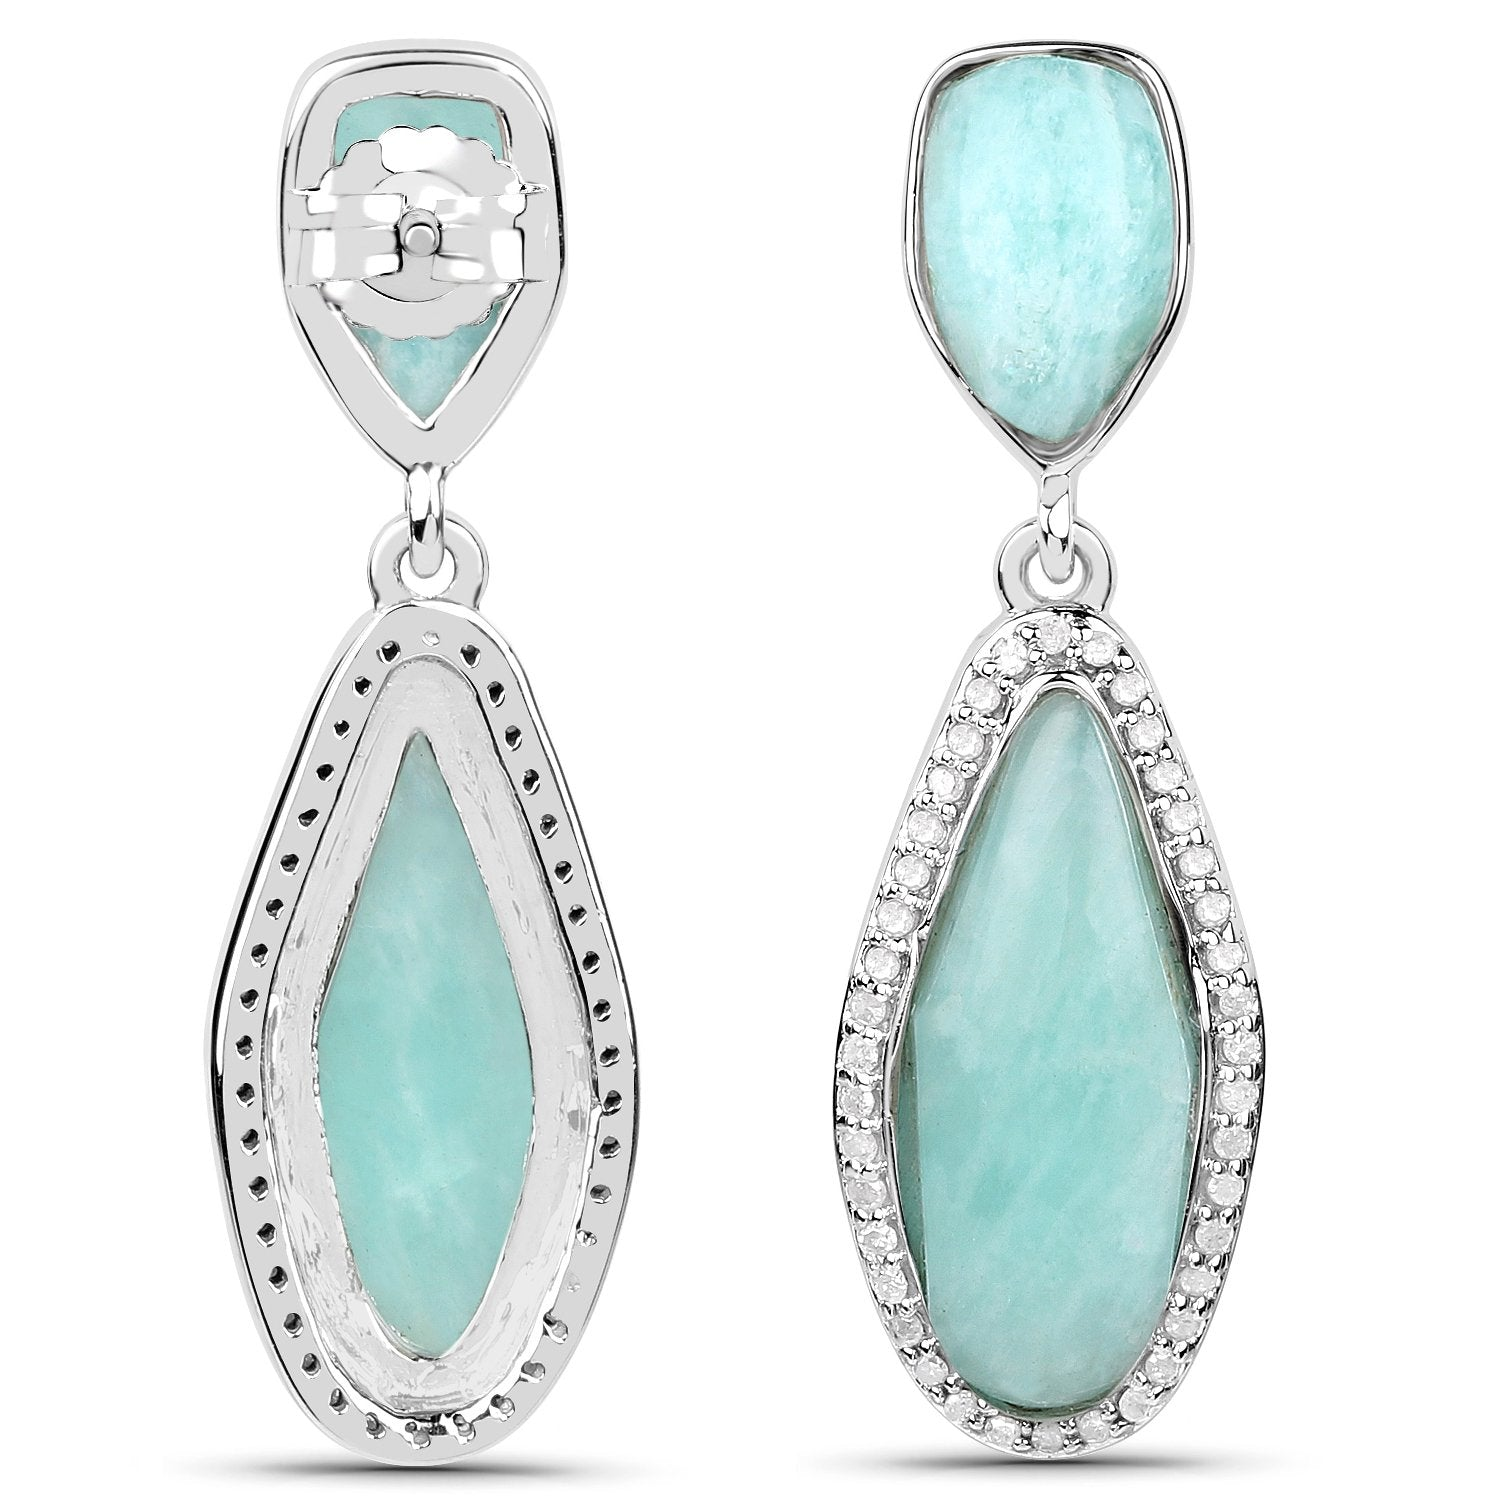 LoveHuang 13.66 Carats Genuine Amazonite and White Topaz Teardrop Earrings Solid .925 Sterling Silver With Rhodium Plating